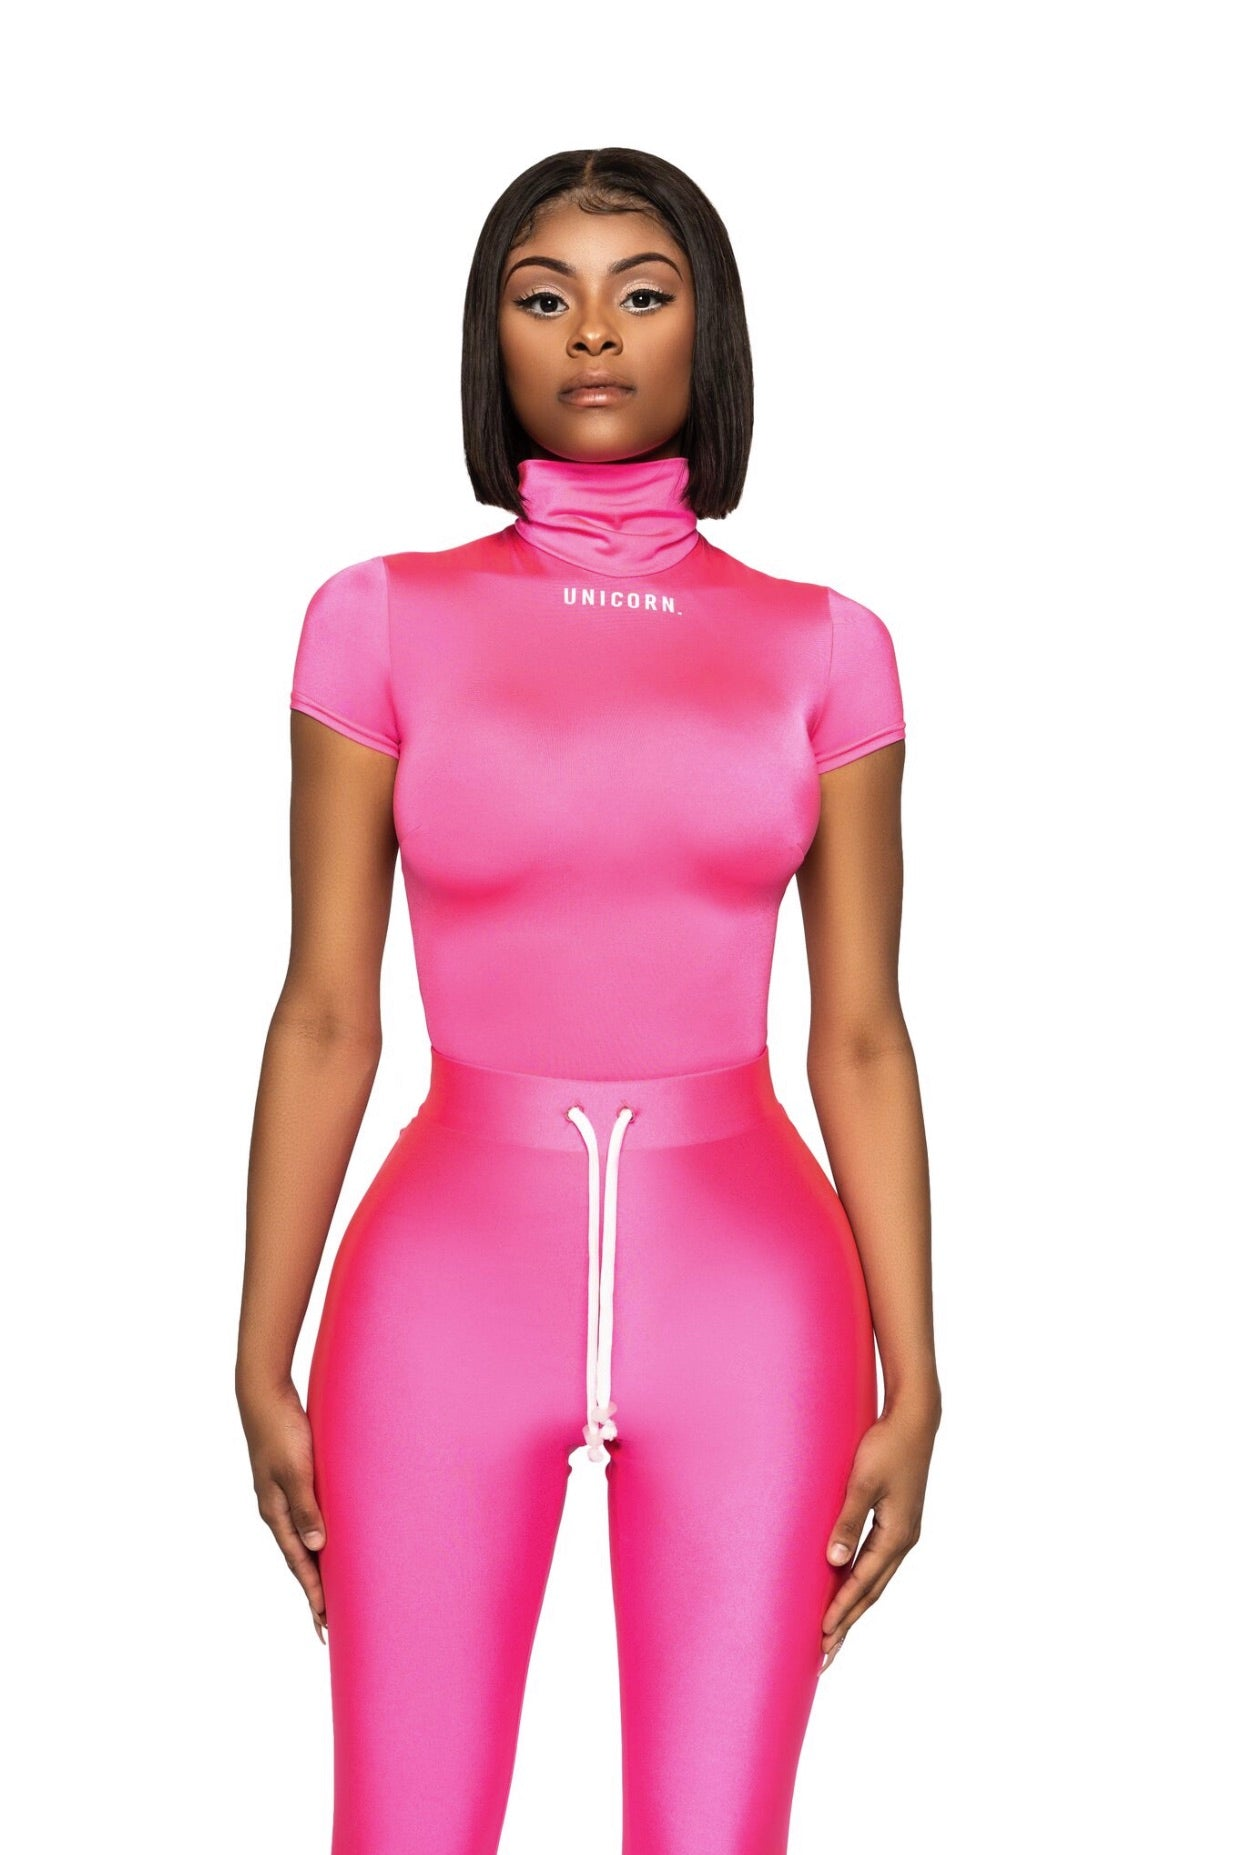 Pink Unicorn Bodysuit